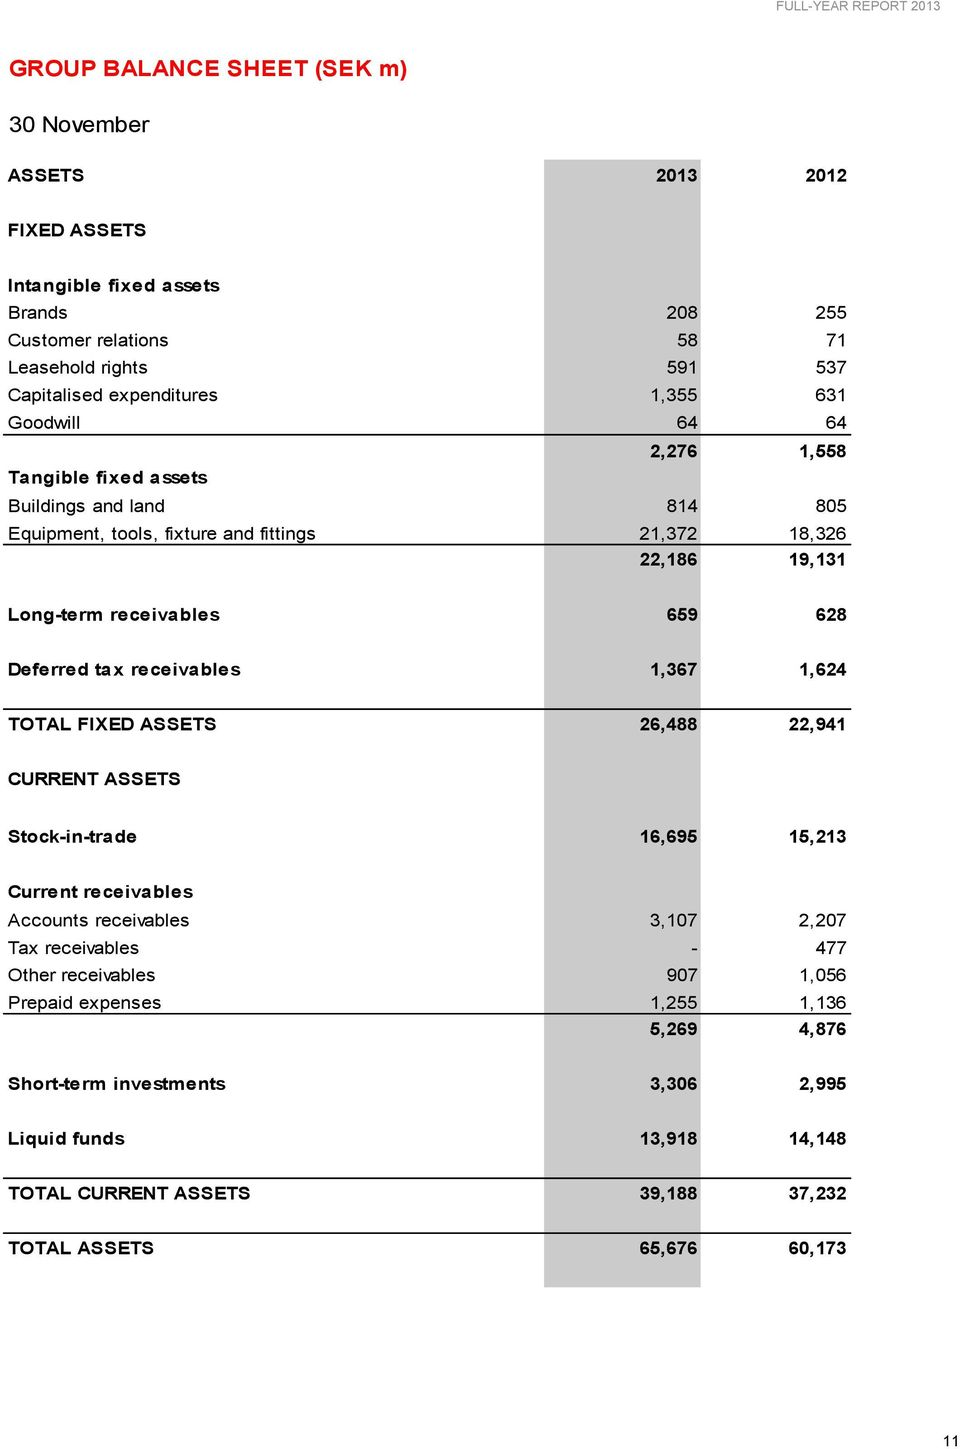 Deferred tax receivables 1,367 1,624 TOTAL FIXED ASSETS 26,488 22,941 CURRENT ASSETS Stock-in-trade 16,695 15,213 Current receivables Accounts receivables 3,107 2,207 Tax receivables -